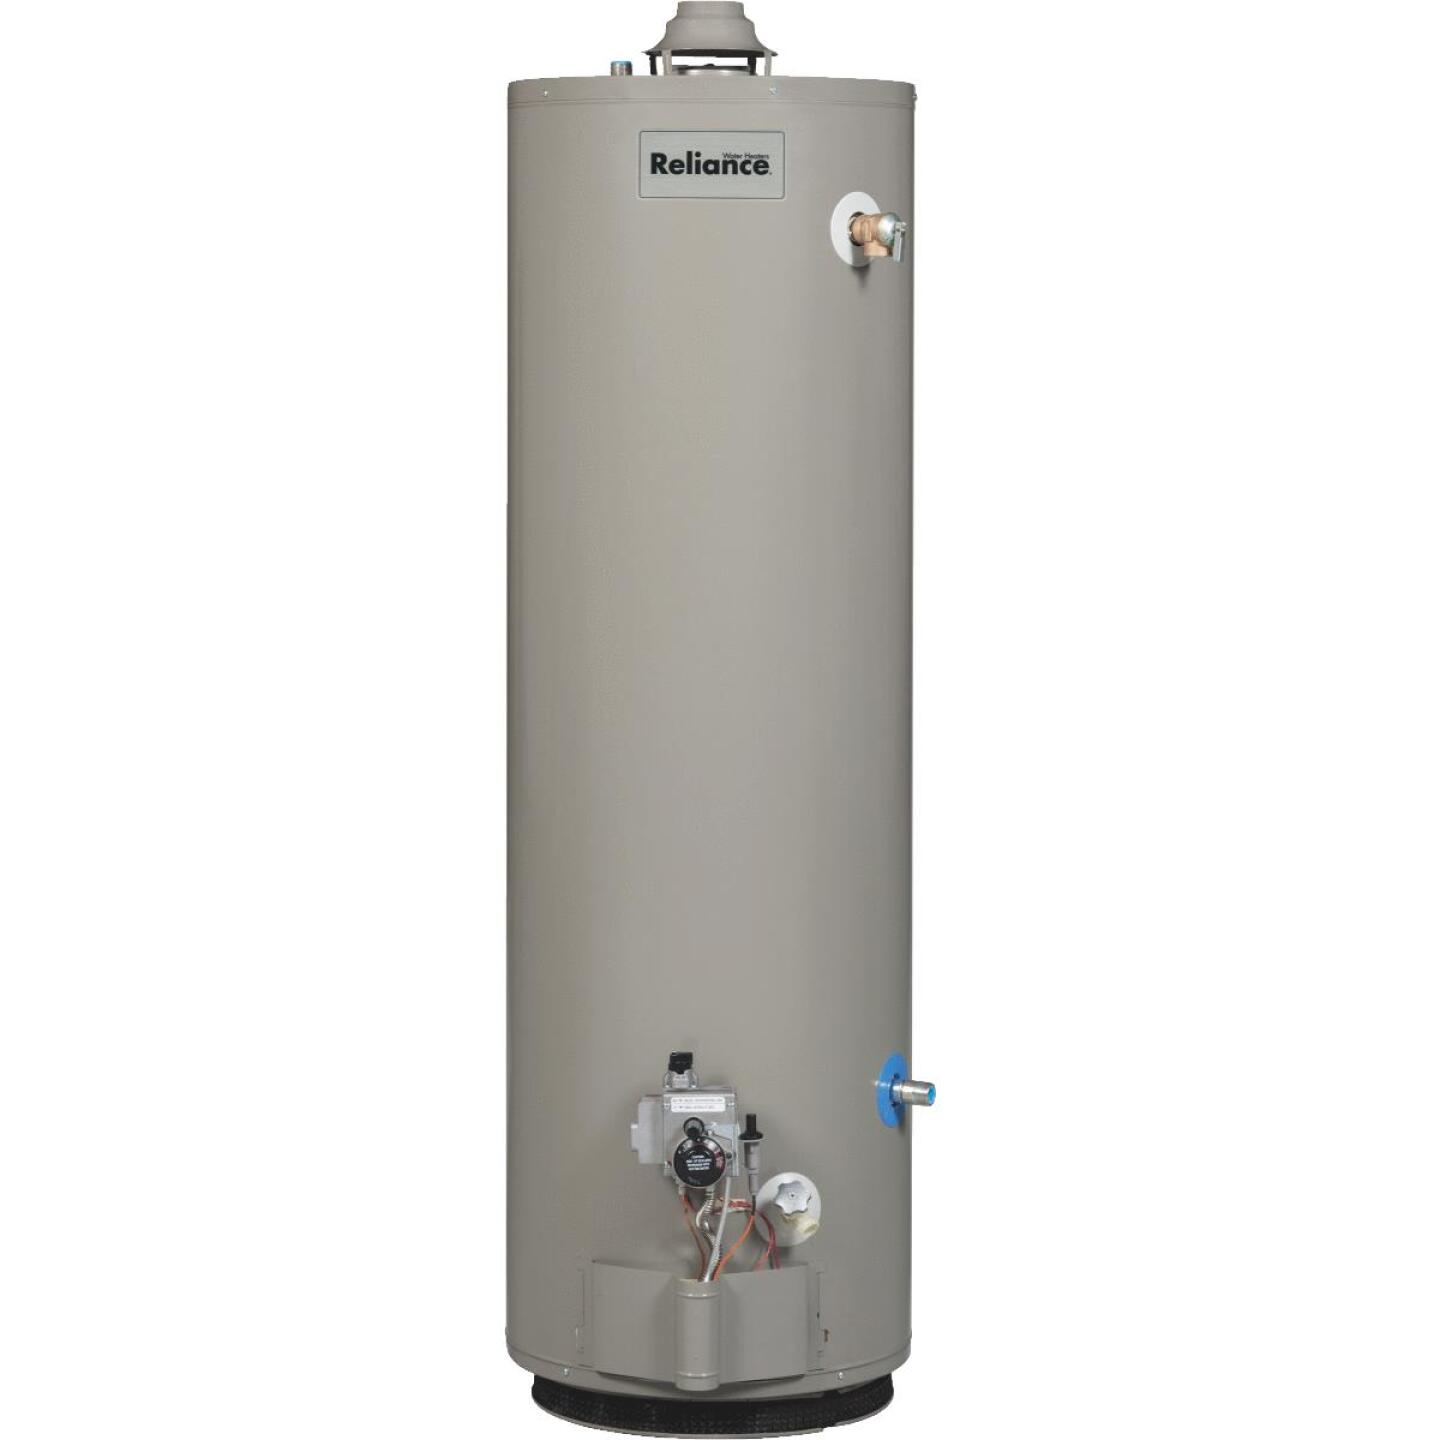 Reliance 40 Gal. 6yr Natural Gas/Liquid Propane Water Heater for Mobile Home Image 1